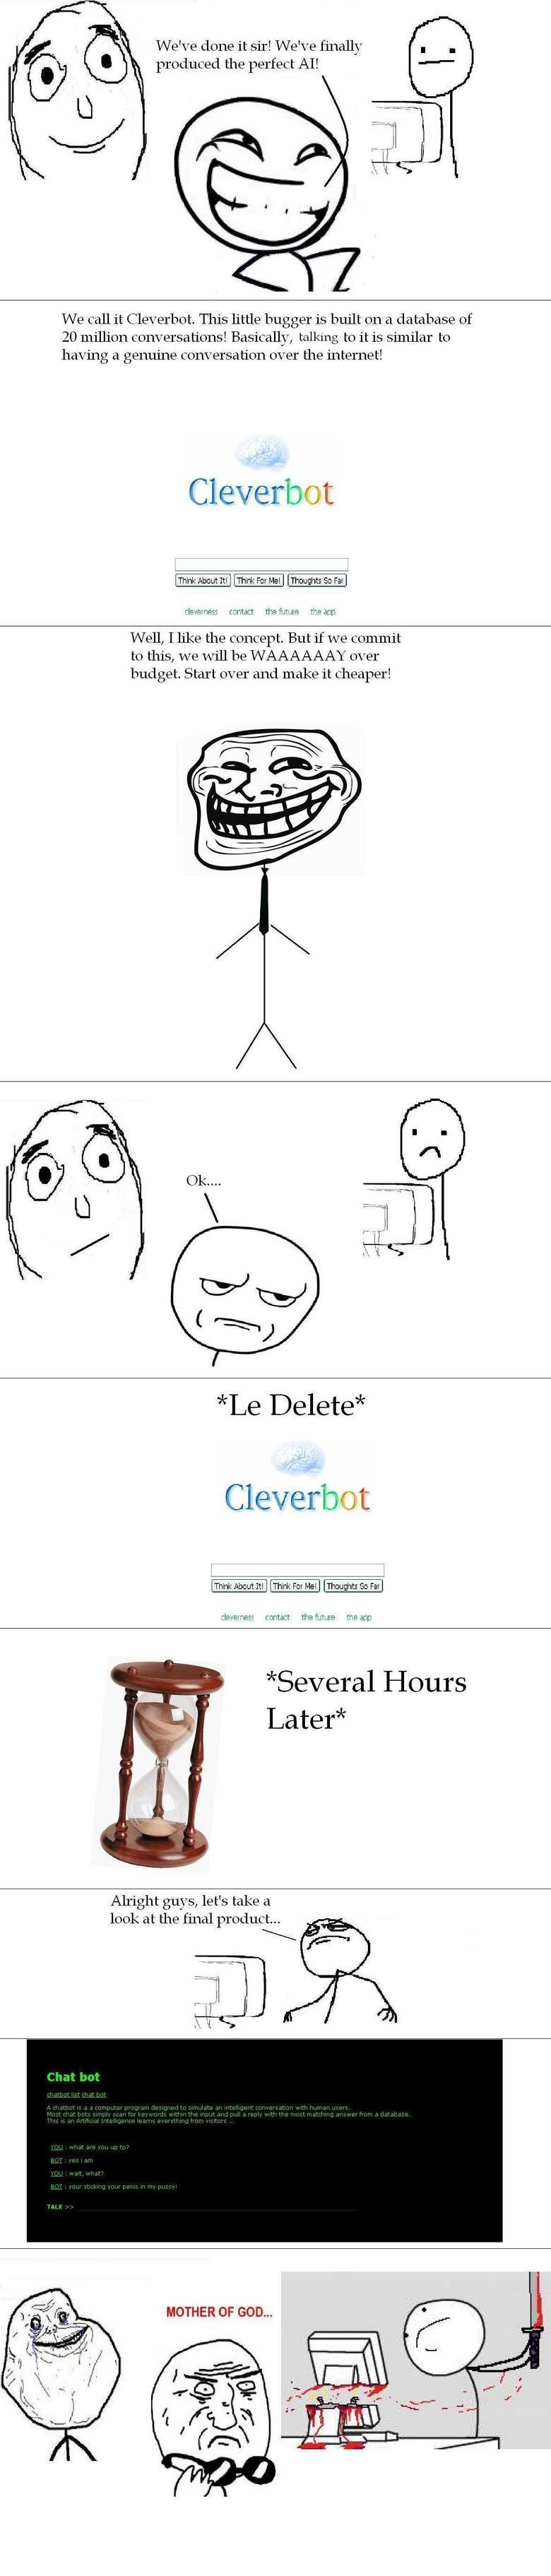 Chat Bot. Some OC by me, enjoy!. f We' done it sir! Weii finally y, produced the perfect Al! We call it Cleverbot. This little bugger is built on a database of